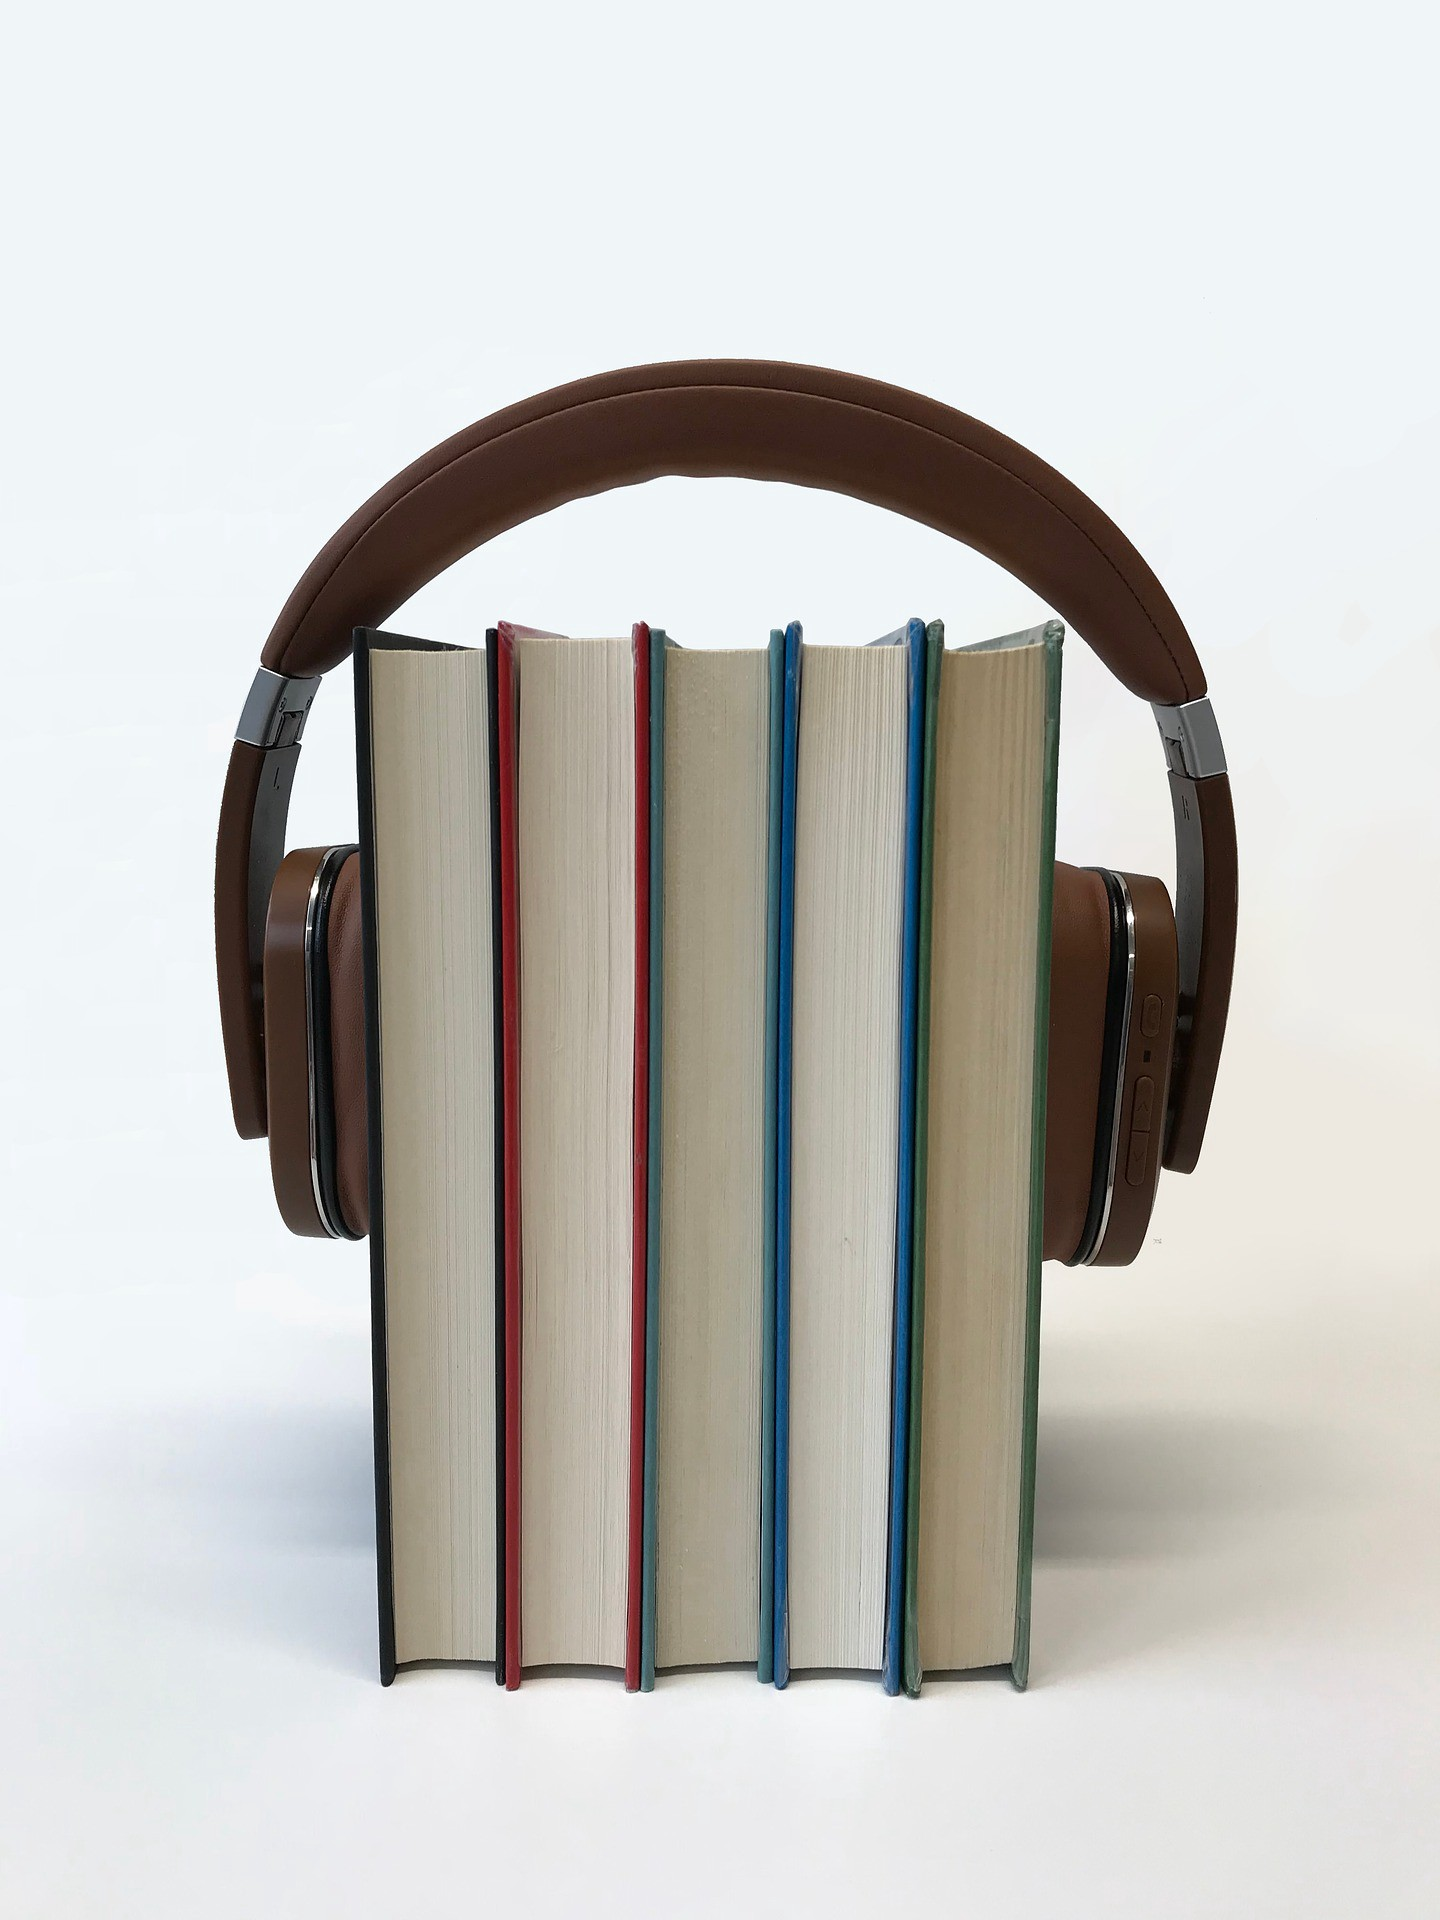 Headphones + books | Photo by sindrehsoereide from Pixabay